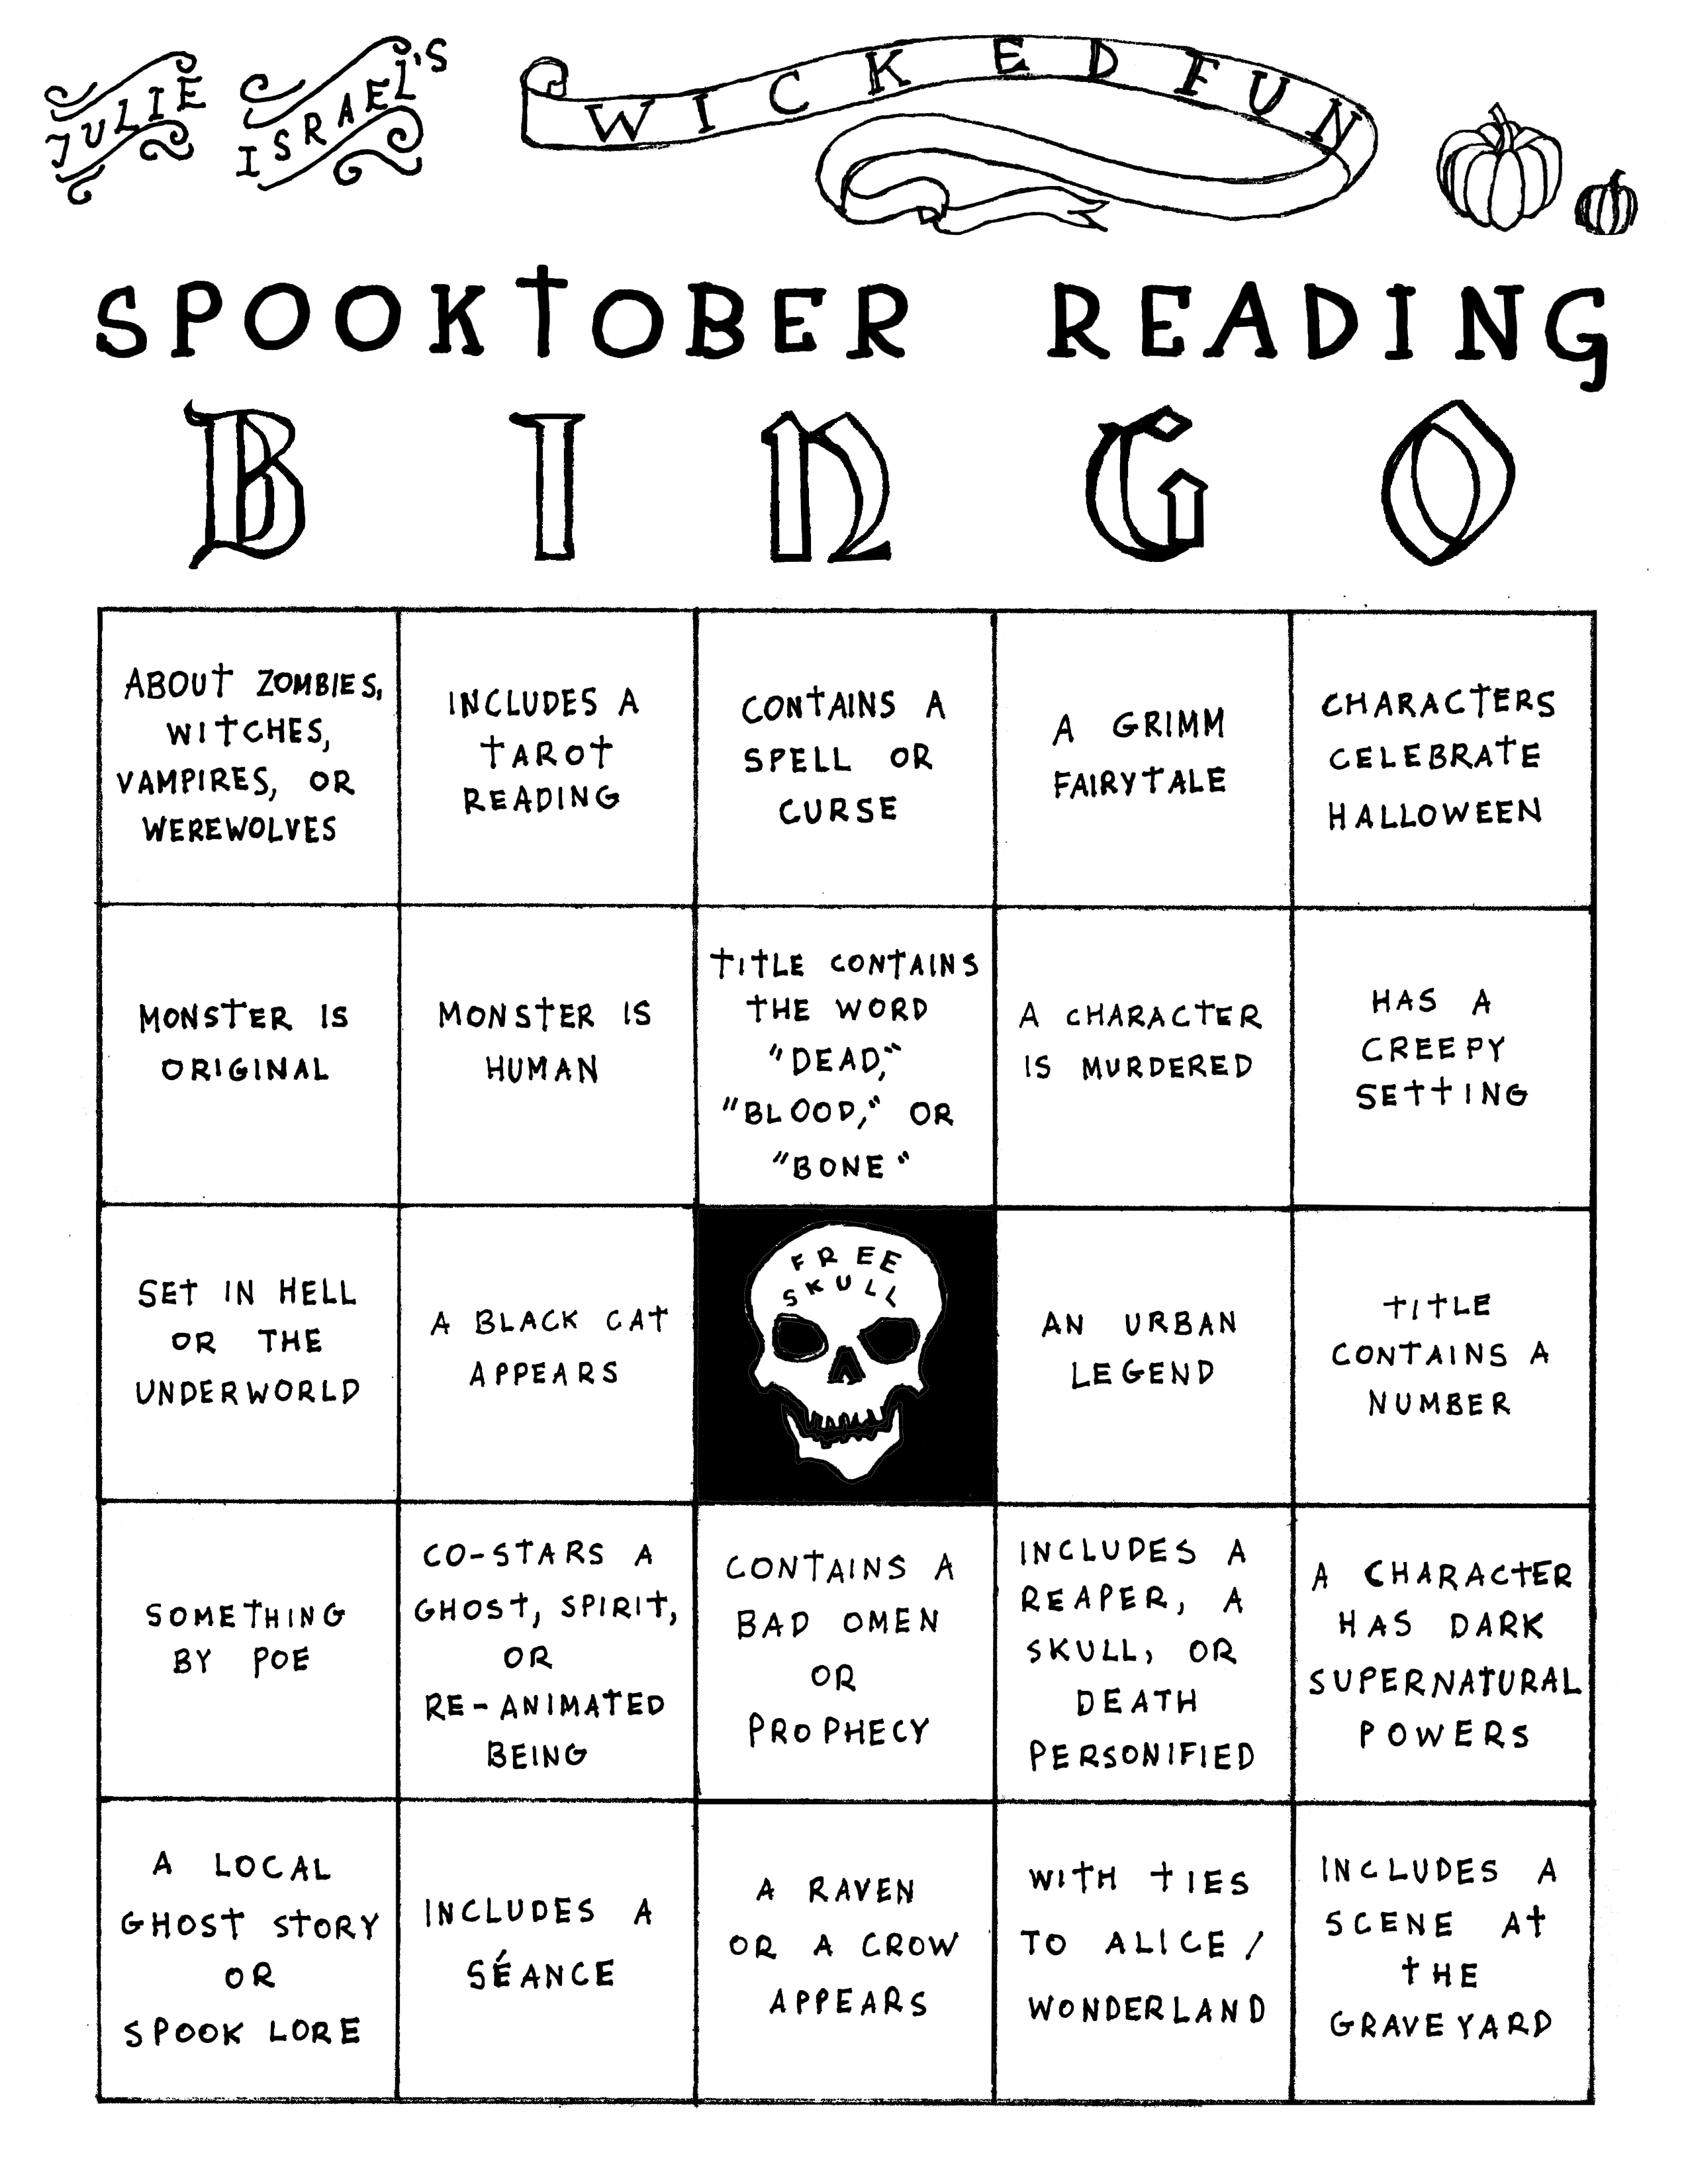 Spooktober Reading Bingo